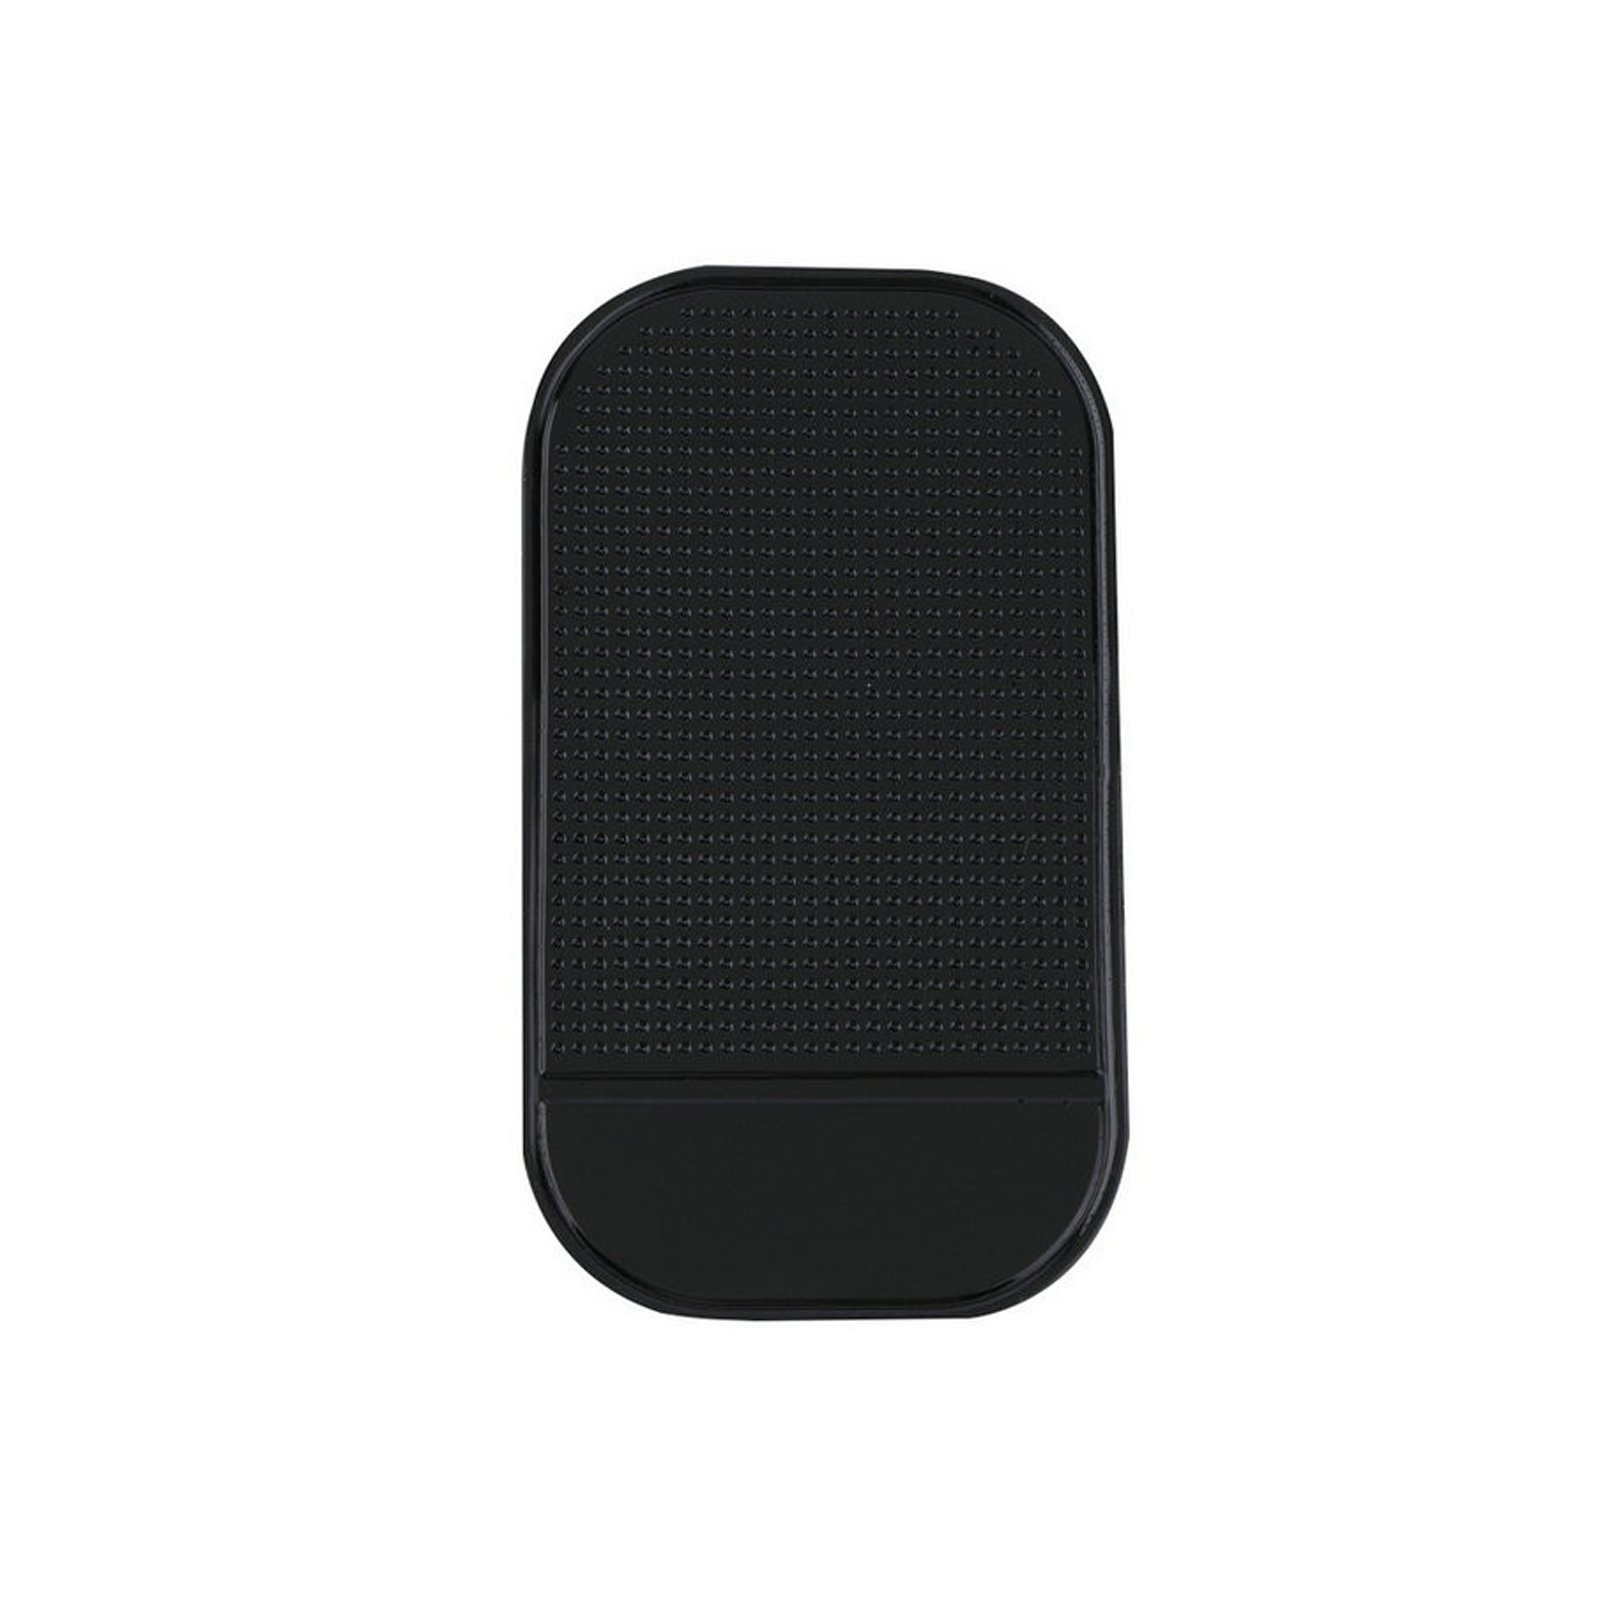 Shopready 28cm x 18cm Non-Slip Car Mat Dashboard Pad for Mobile Phone and GPS